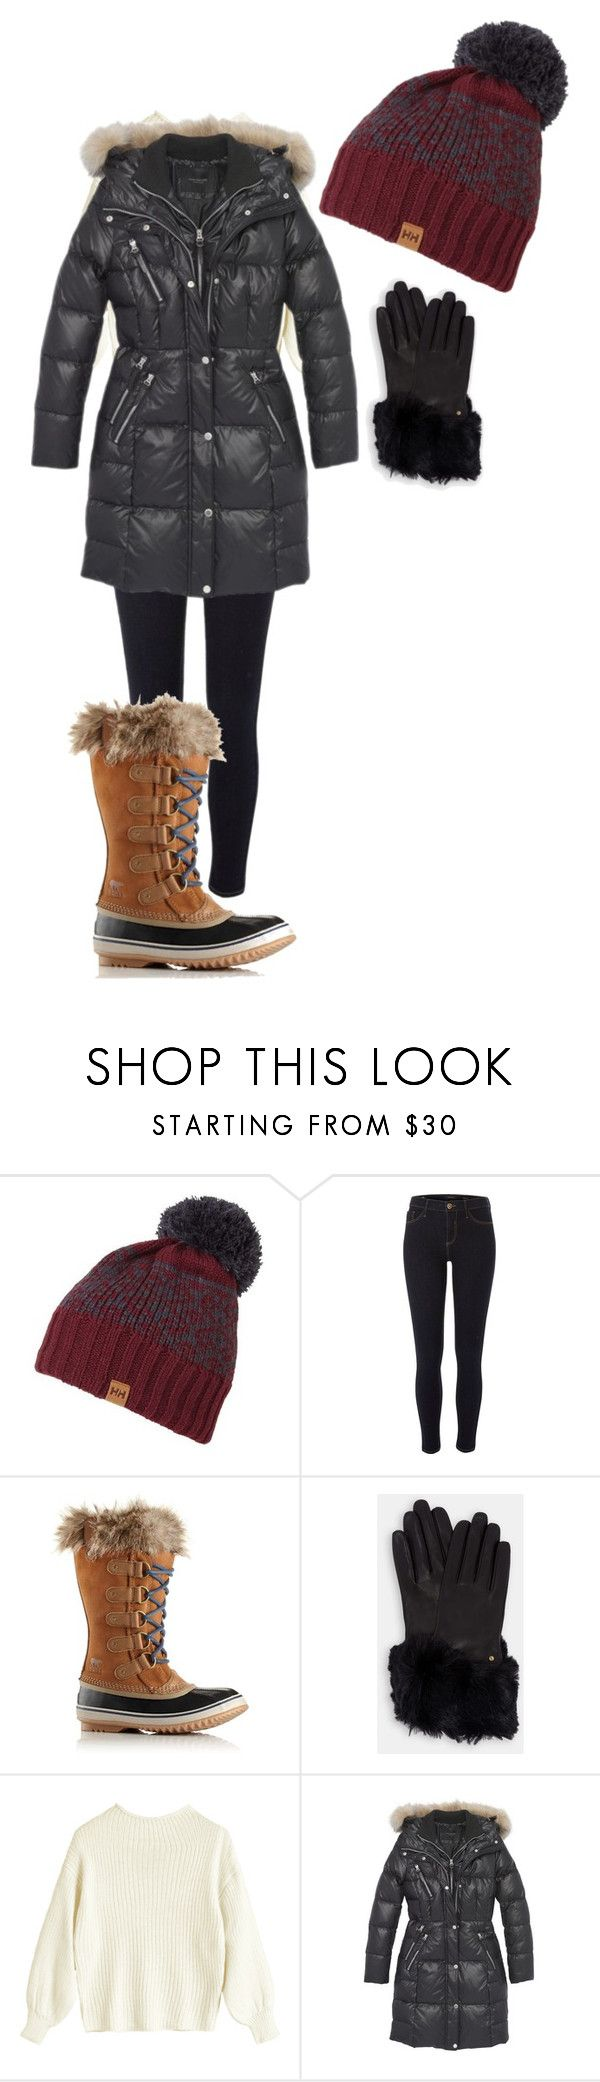 """Untitled #686"" by karinasoto39 on Polyvore featuring Helly Hansen, River Island, SOREL, Ted Baker and Andrew Marc"